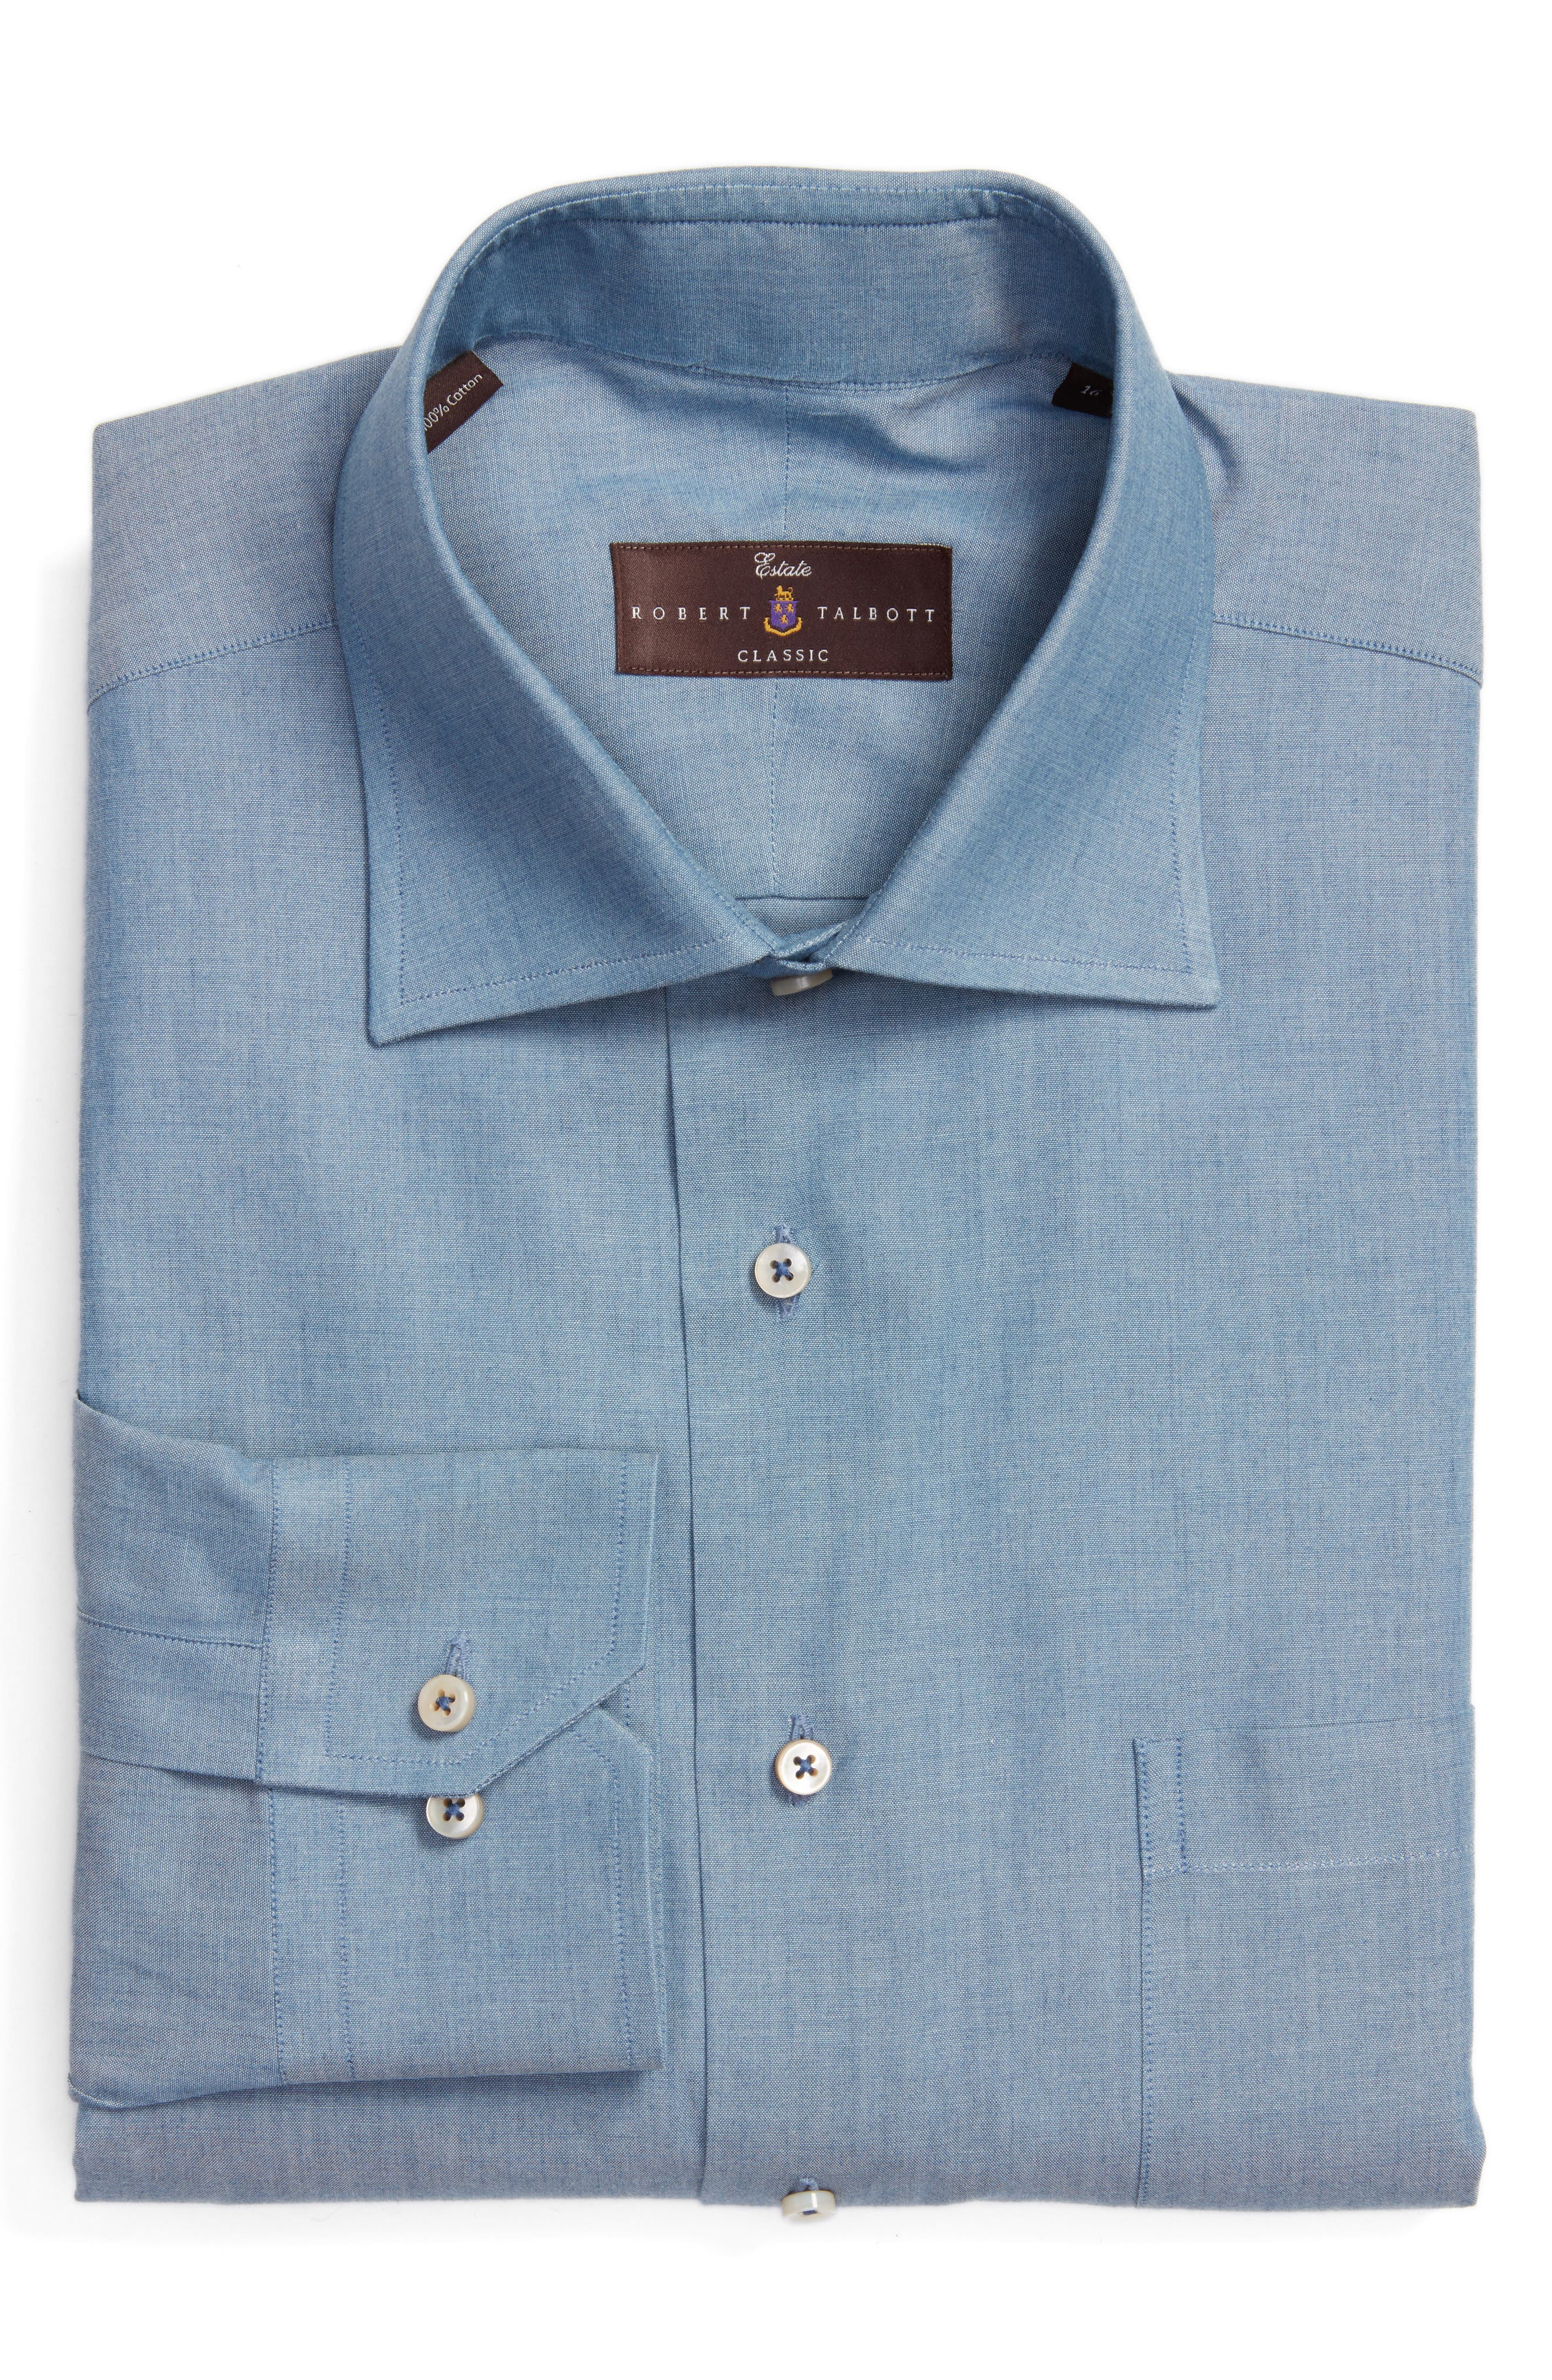 Robert Talbott Classic Fit Oxford Dress Shirt